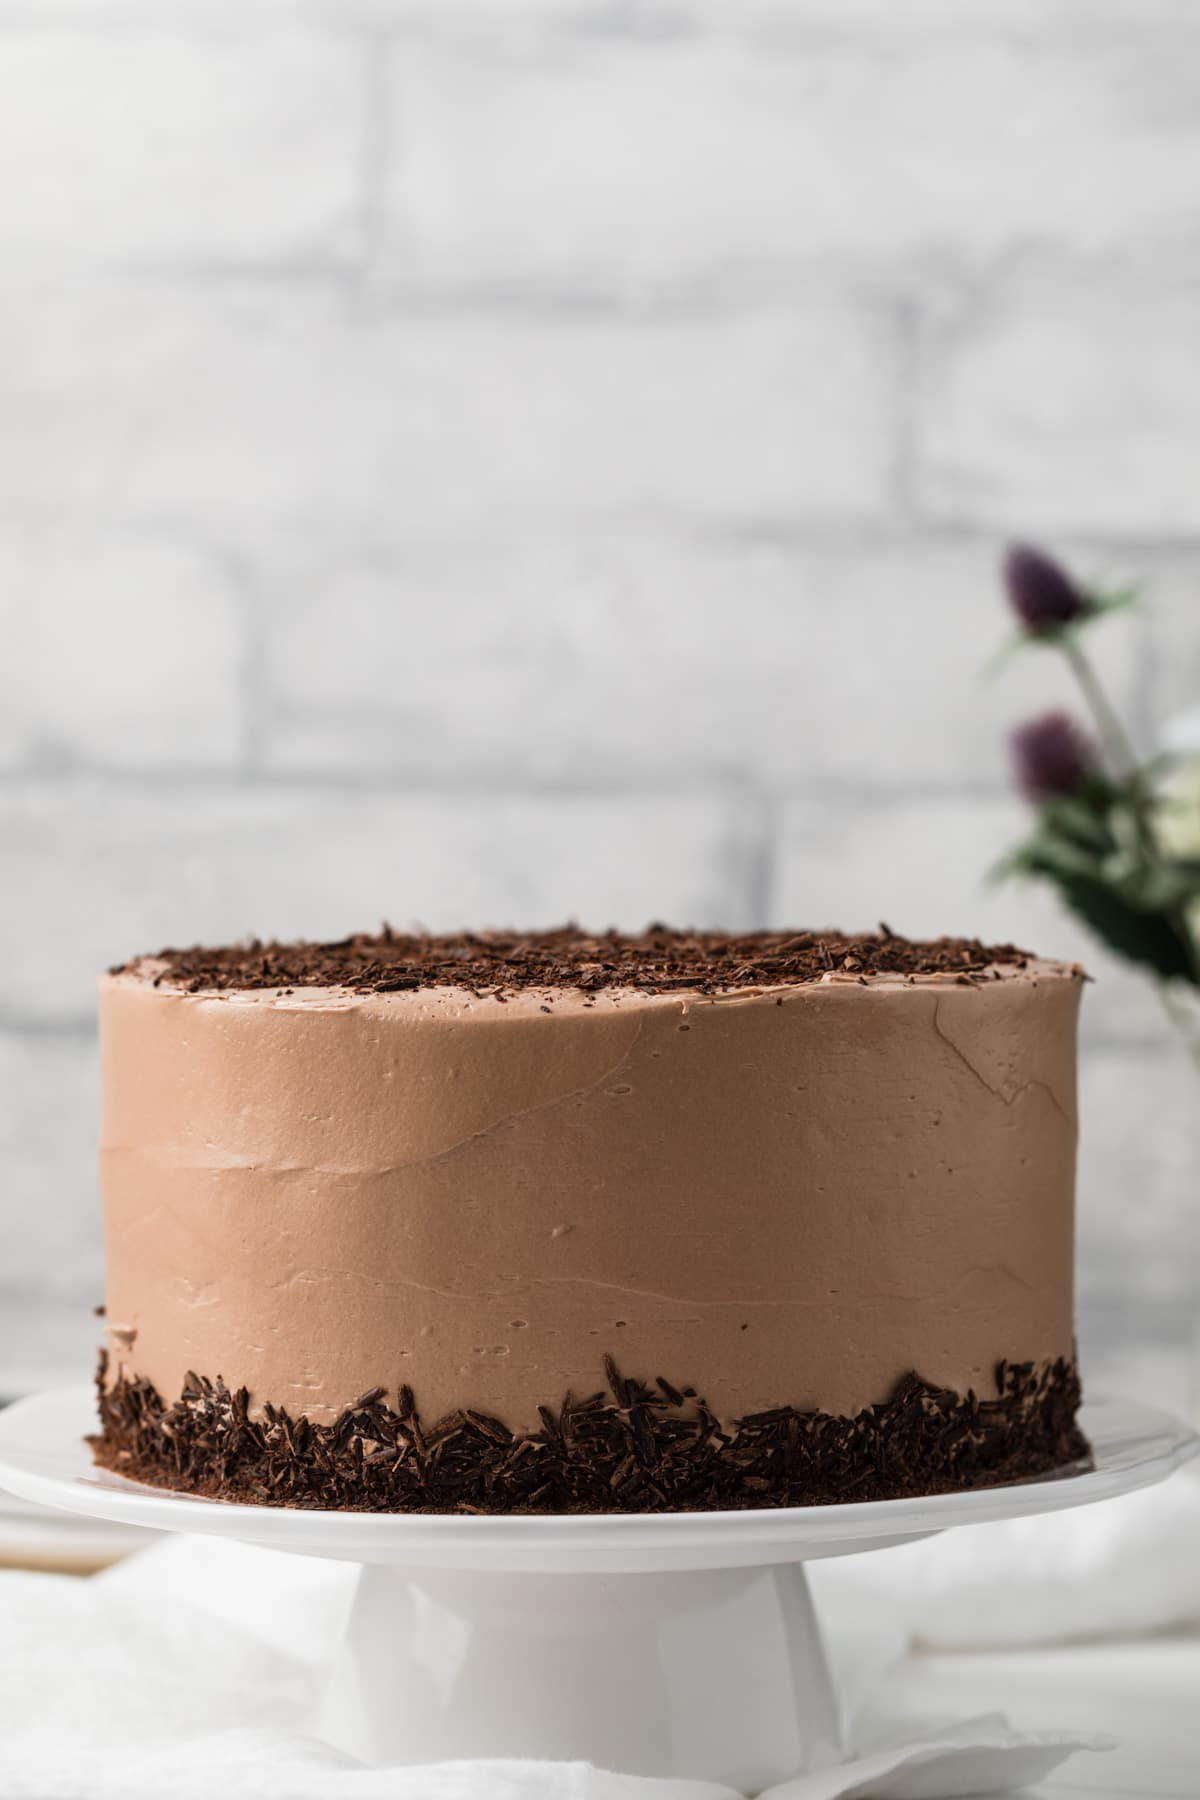 Nutella cake with Nutella frosting on white cake stand